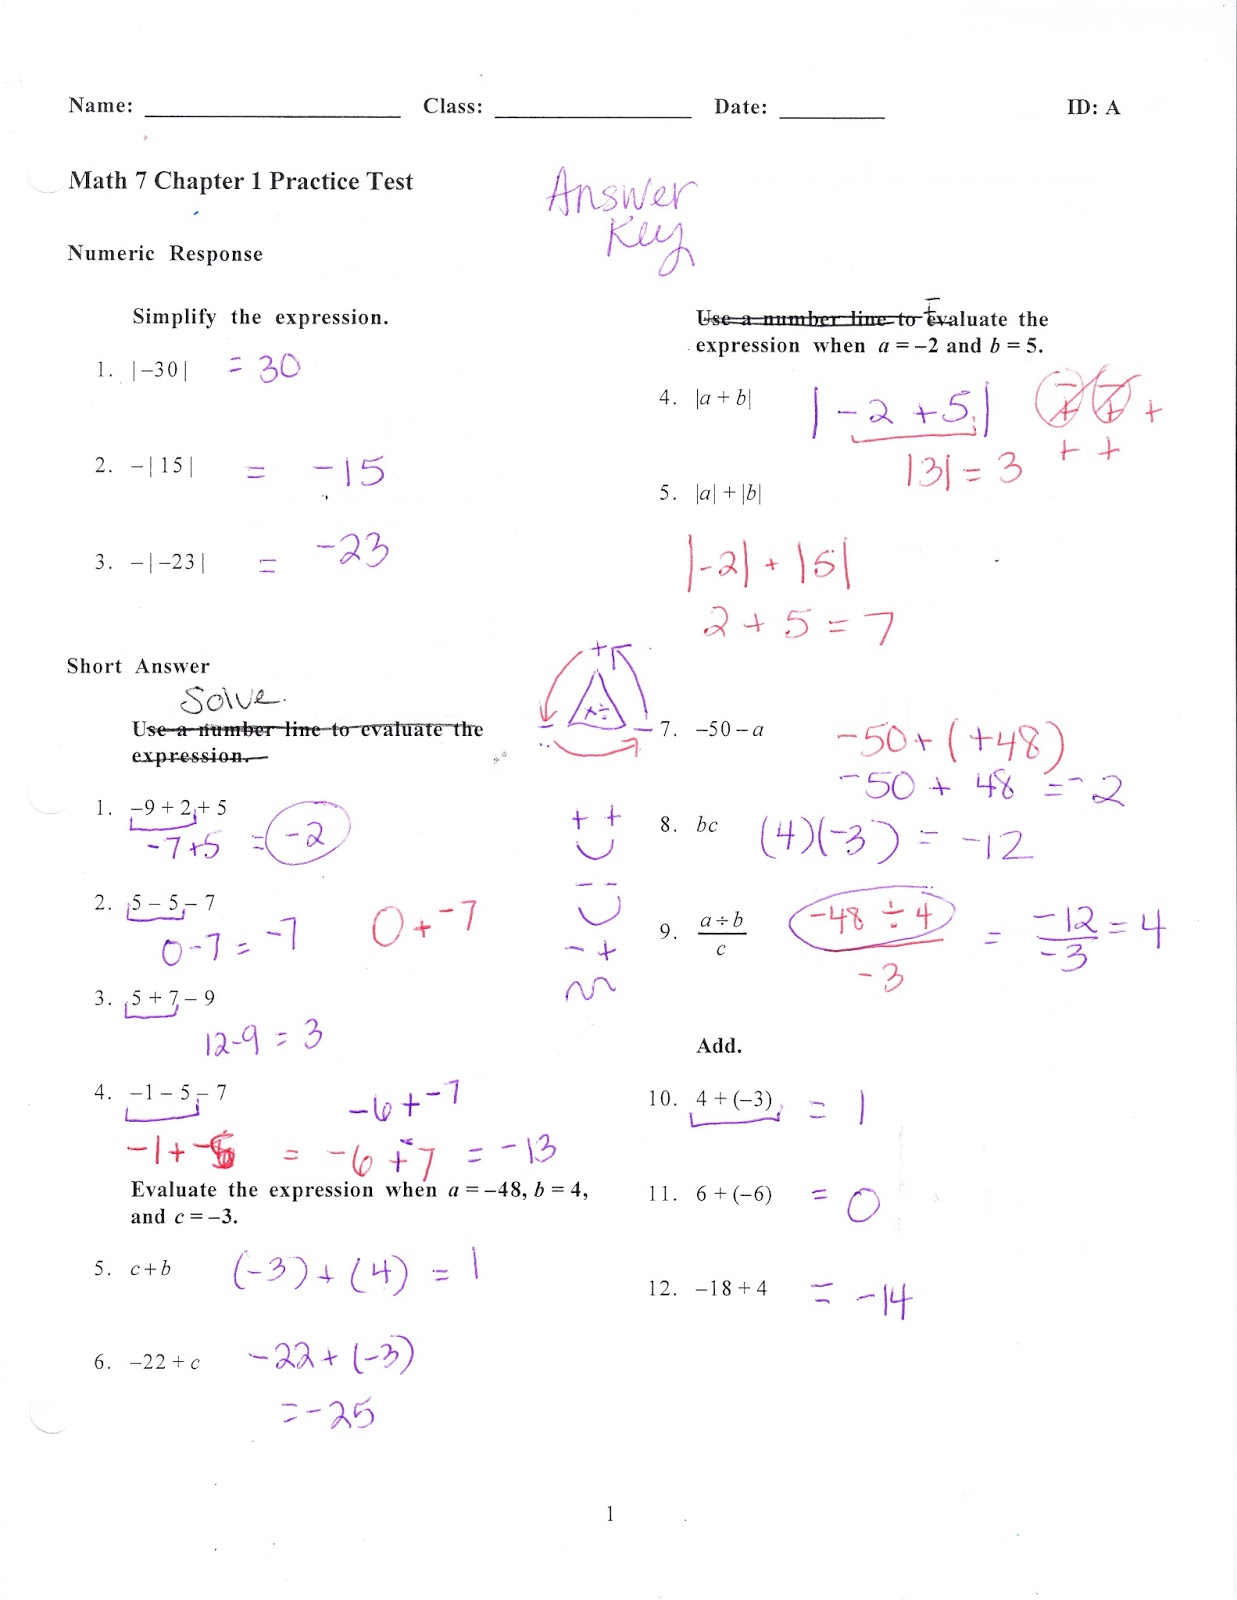 Ms. Jean's Classroom Blog: Math 7 Chapter 1 Practice Test ...